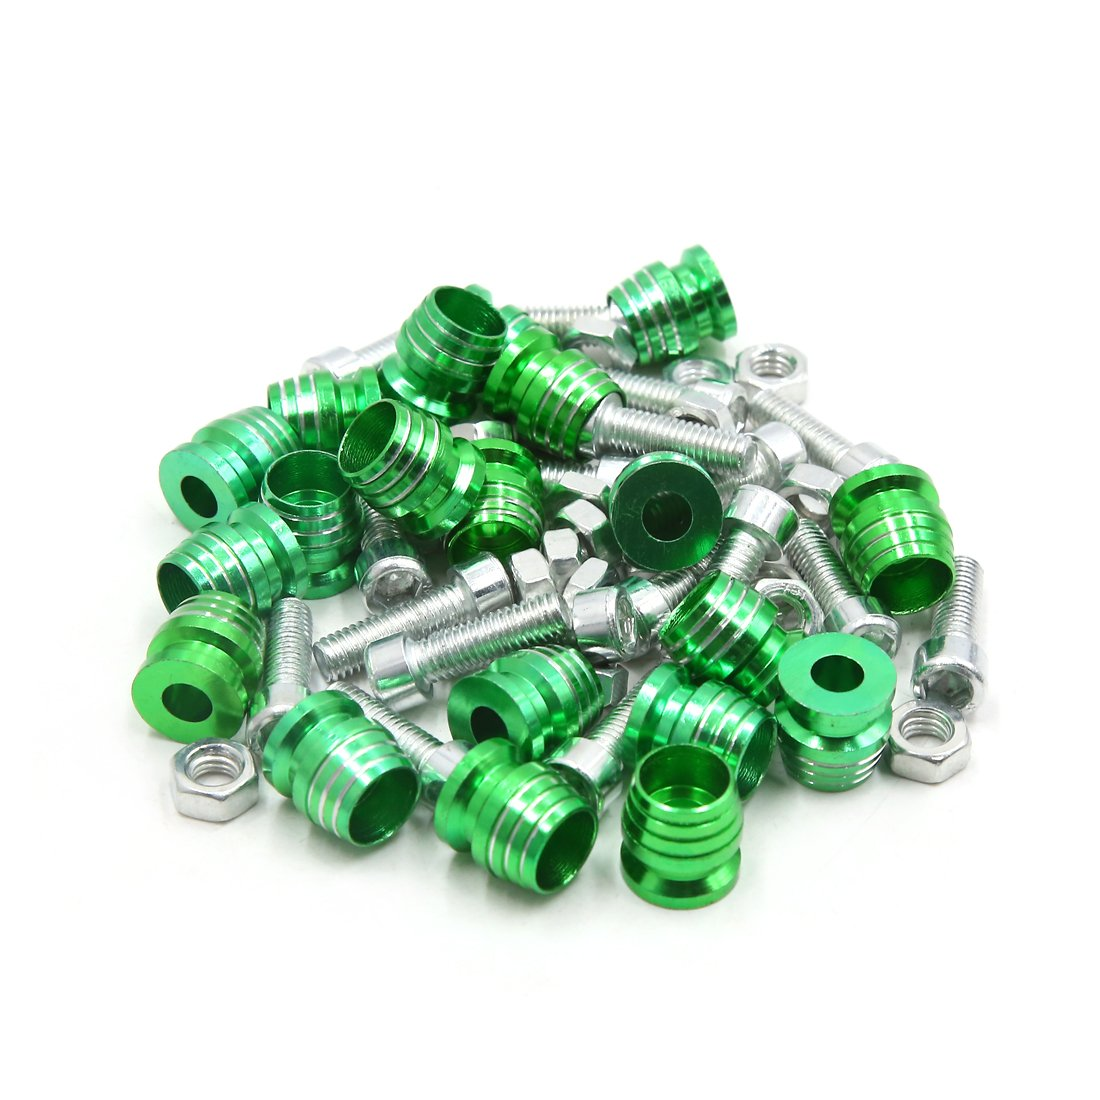 Uxcell a17101200ux0552 Motorcycle License Plate Bolt Screw 20 Pack